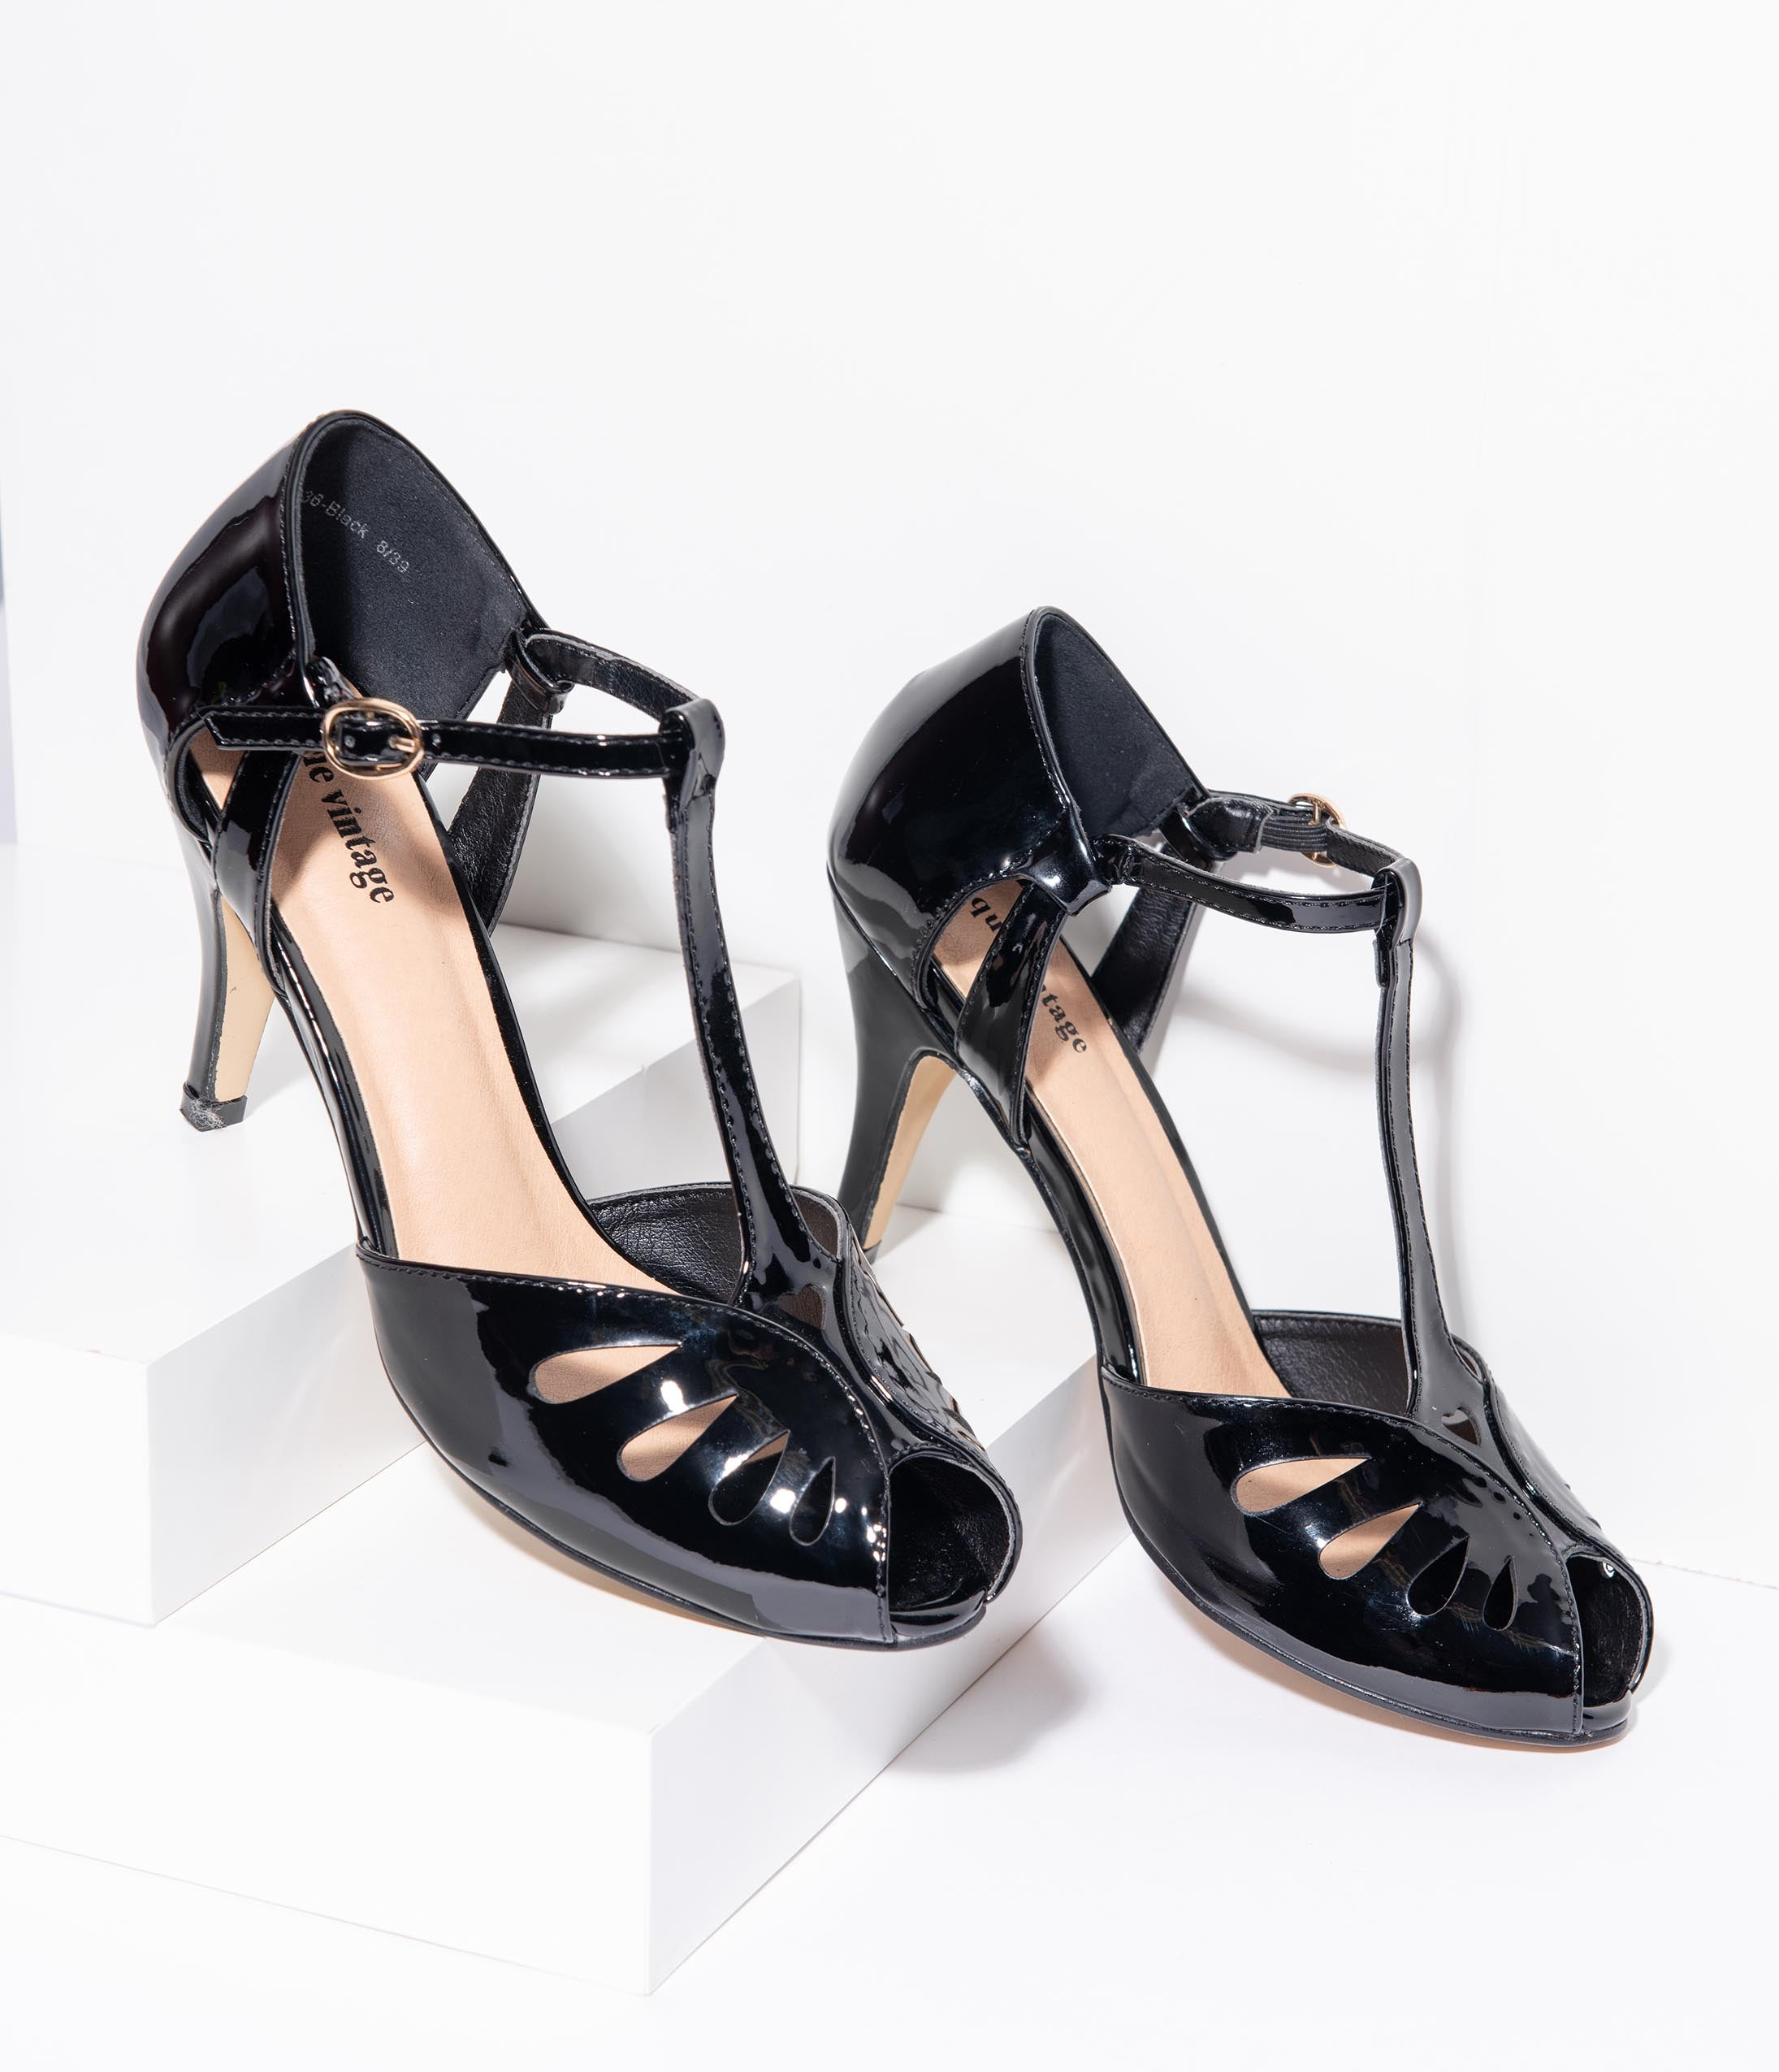 Vintage Style Shoes, Vintage Inspired Shoes Unique Vintage Black Patent Leatherette Peep Toe T-Strap Everly Pumps $48.00 AT vintagedancer.com